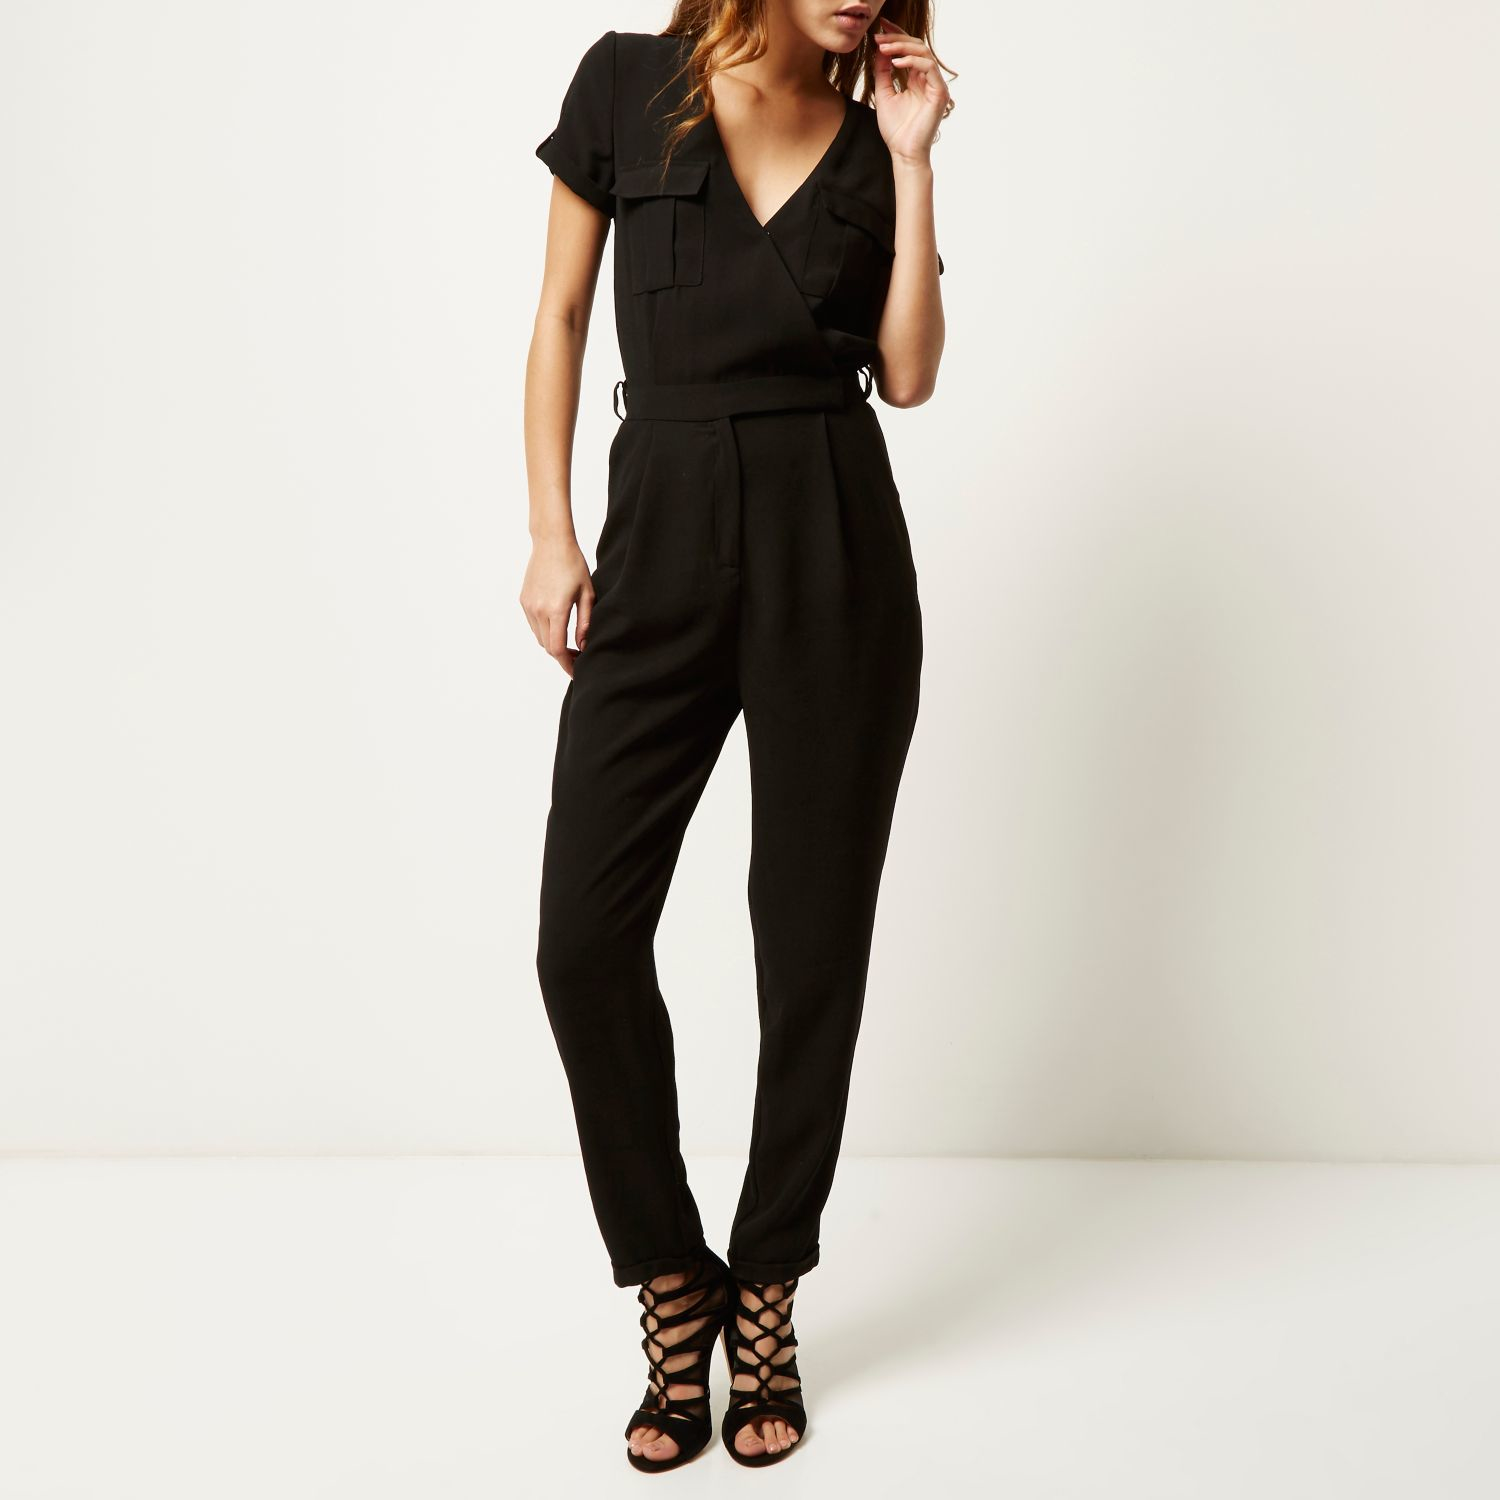 1ecced13f6a River Island Black Smart Waisted Jumpsuit in Black - Lyst